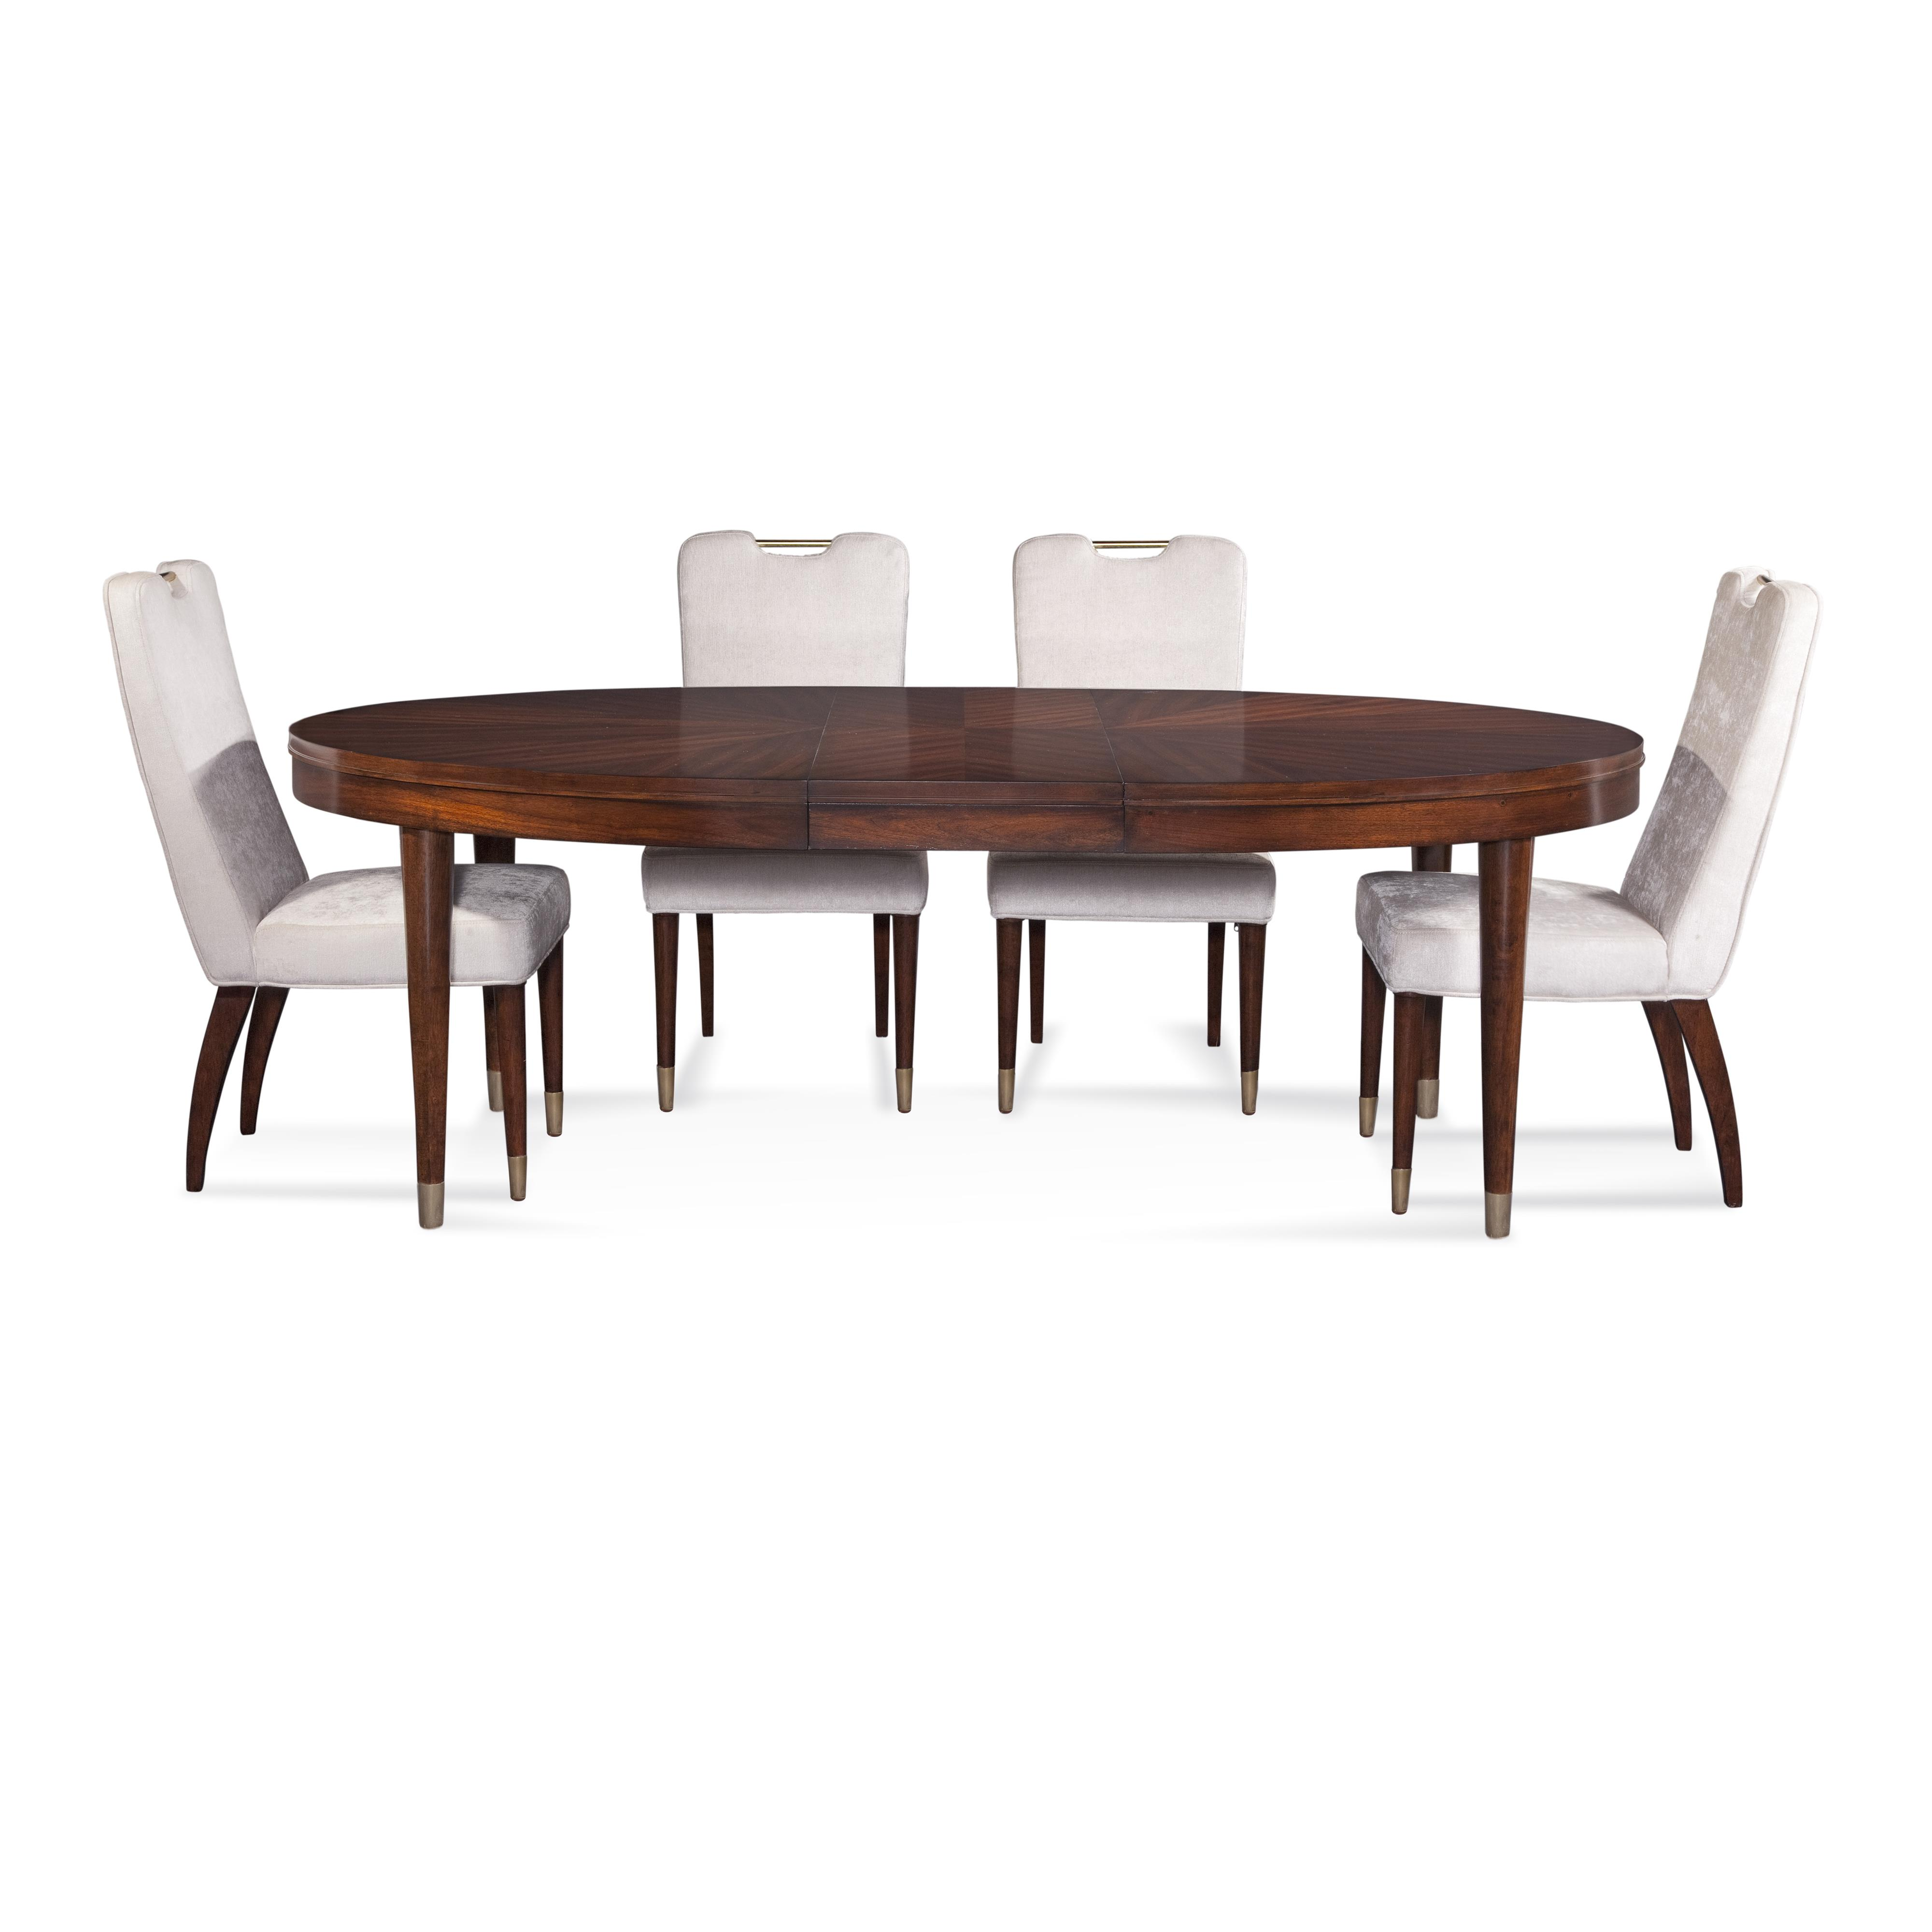 Thoroughly Modern Darrien Casual Dining Set by Bassett Mirror at Alison Craig Home Furnishings